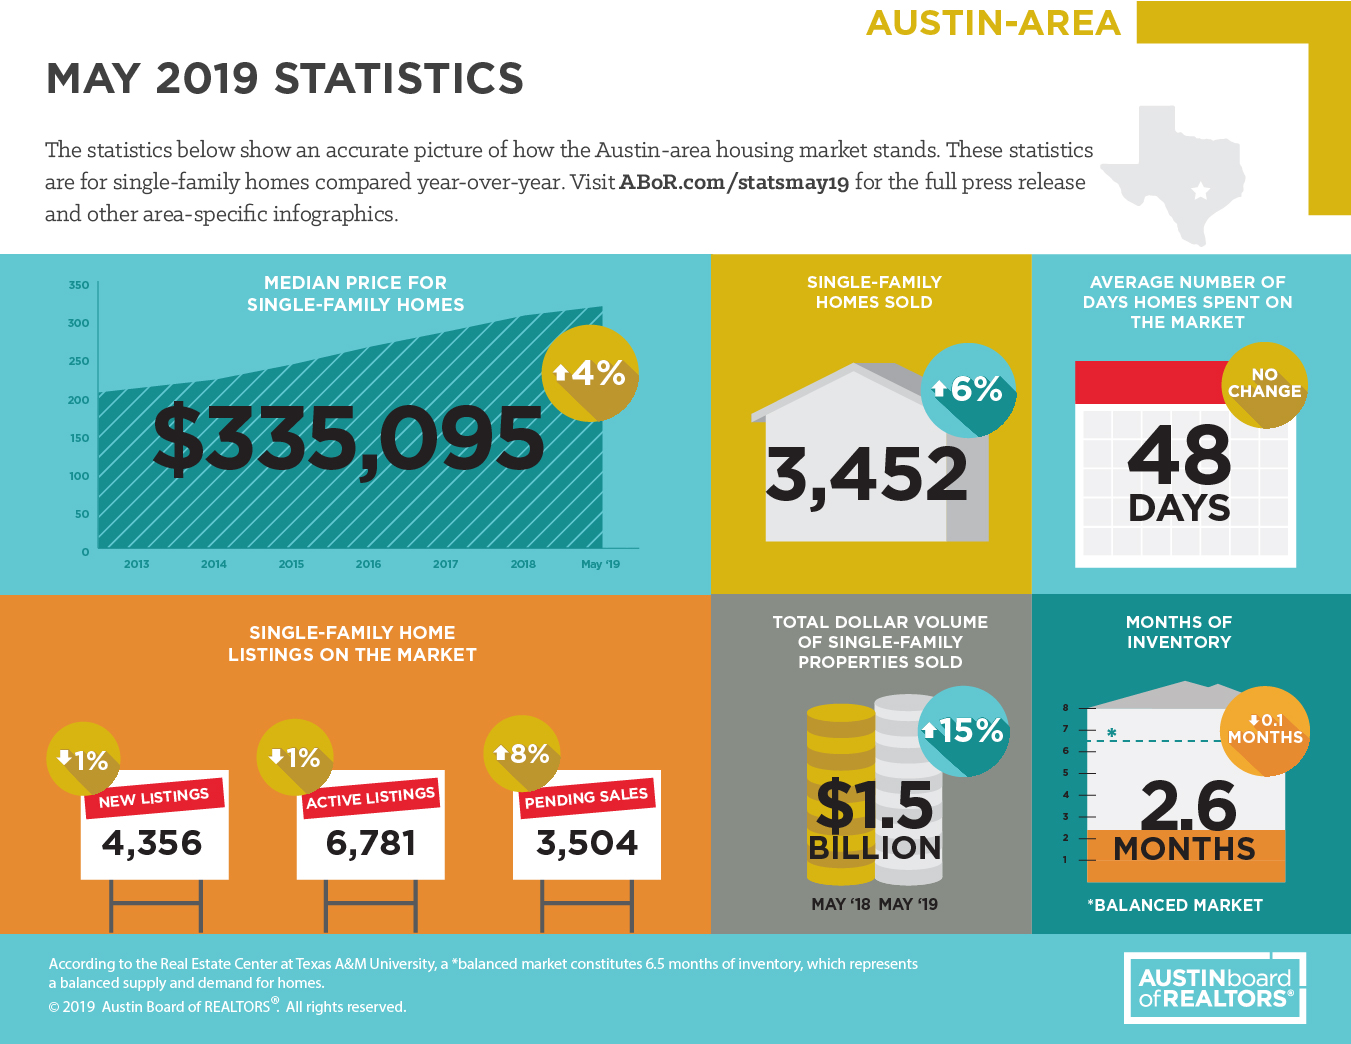 May 2019 Austin-Area stats